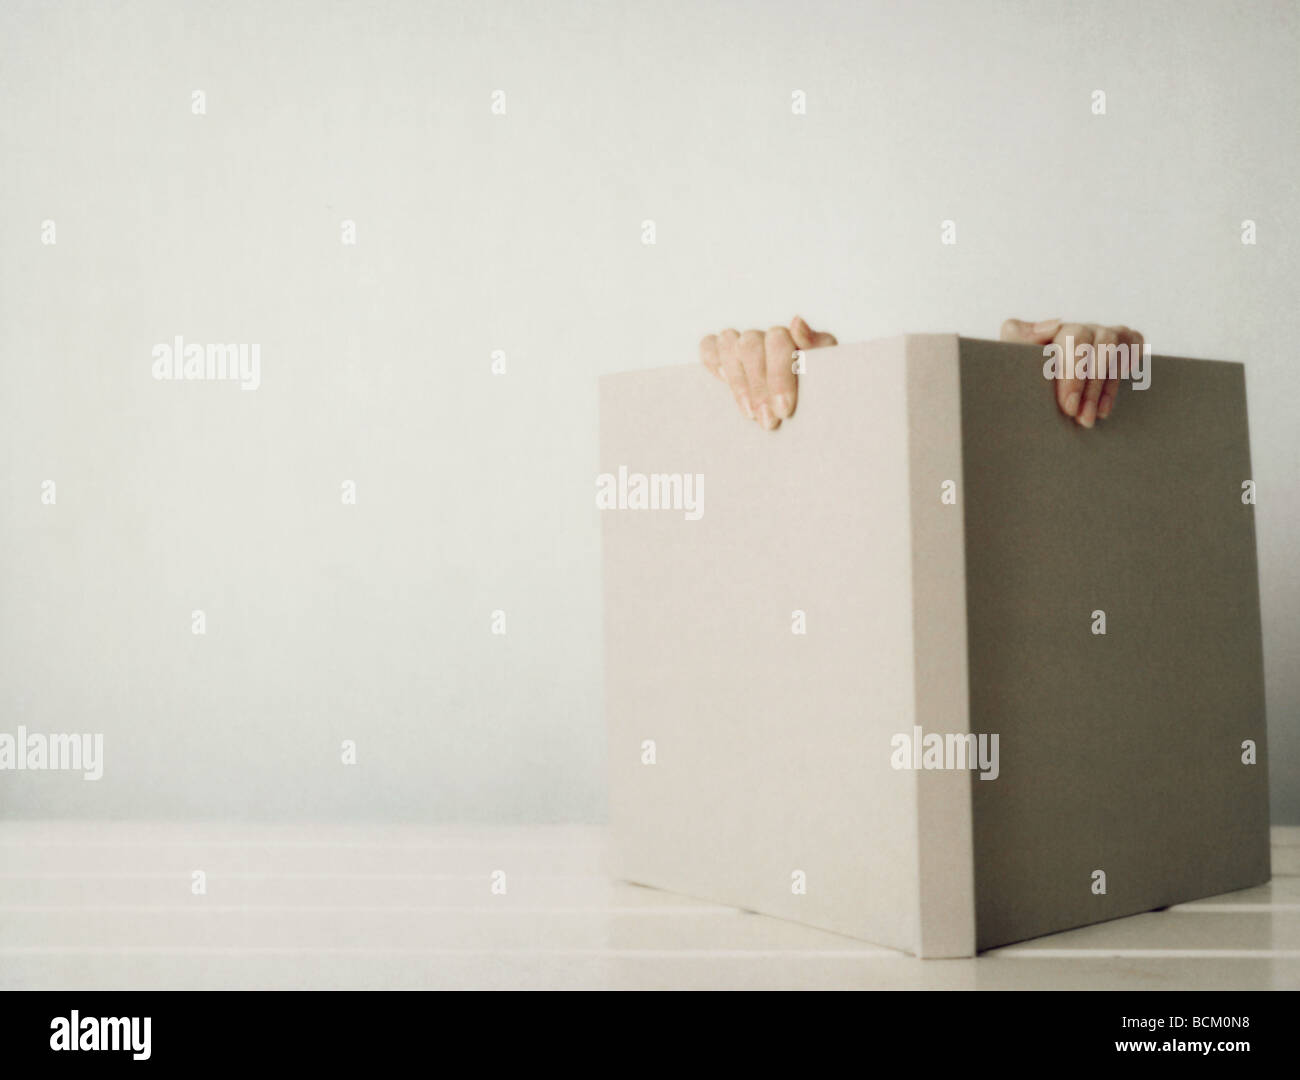 Woman behind open book, hand's holding top of book, close-up - Stock Image